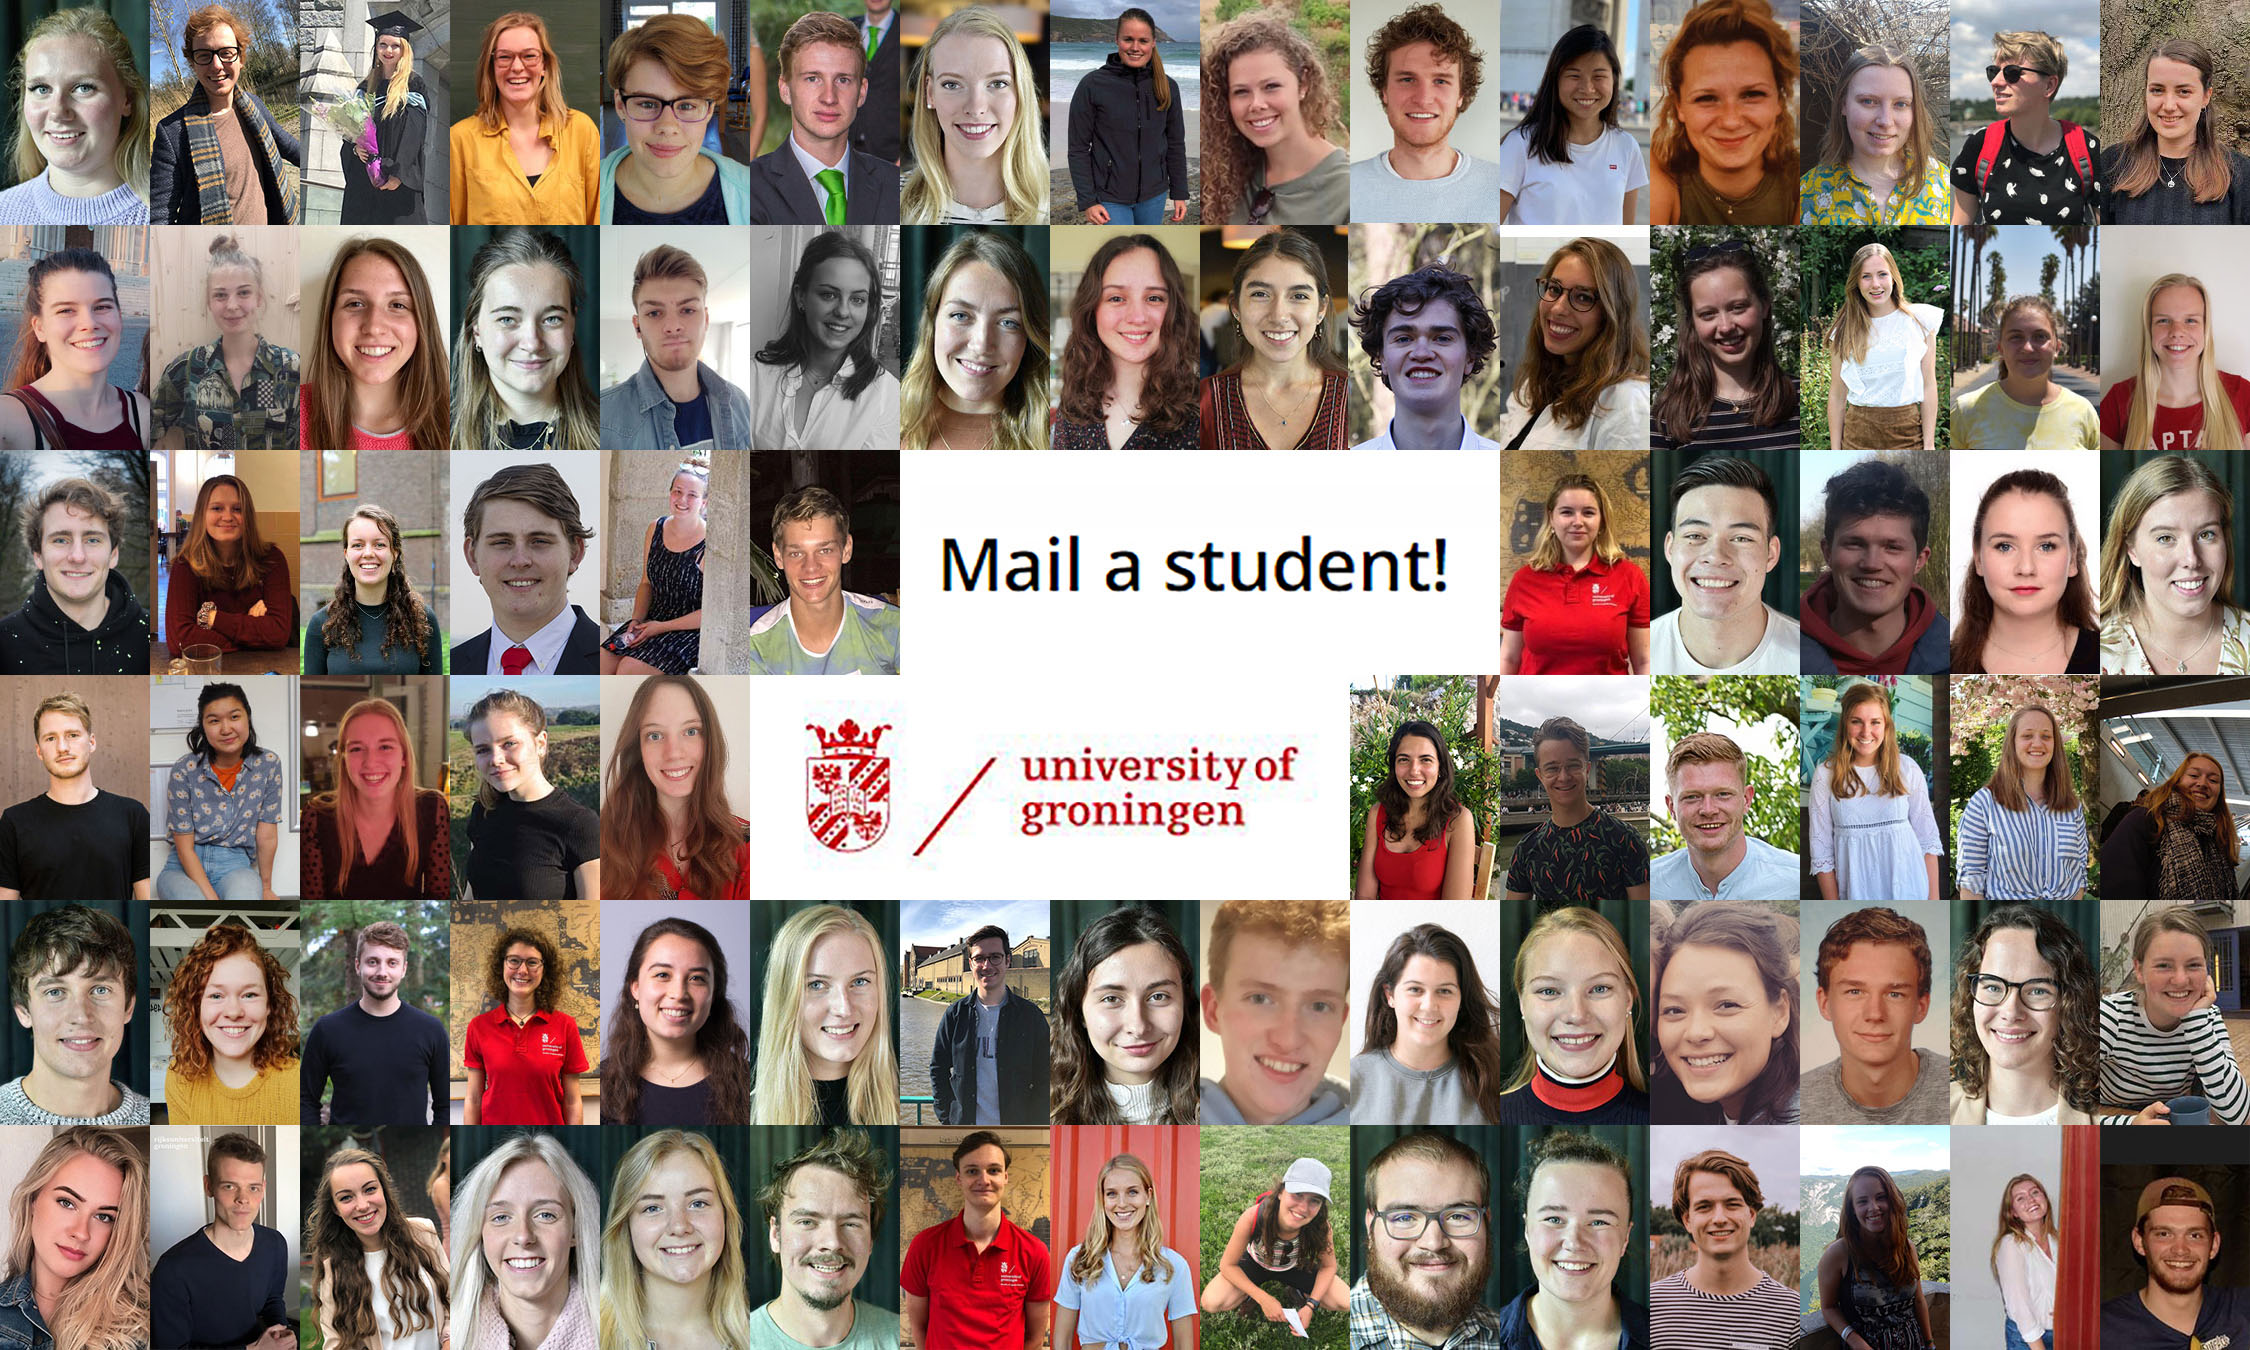 Mail a student of the University of Groningen!